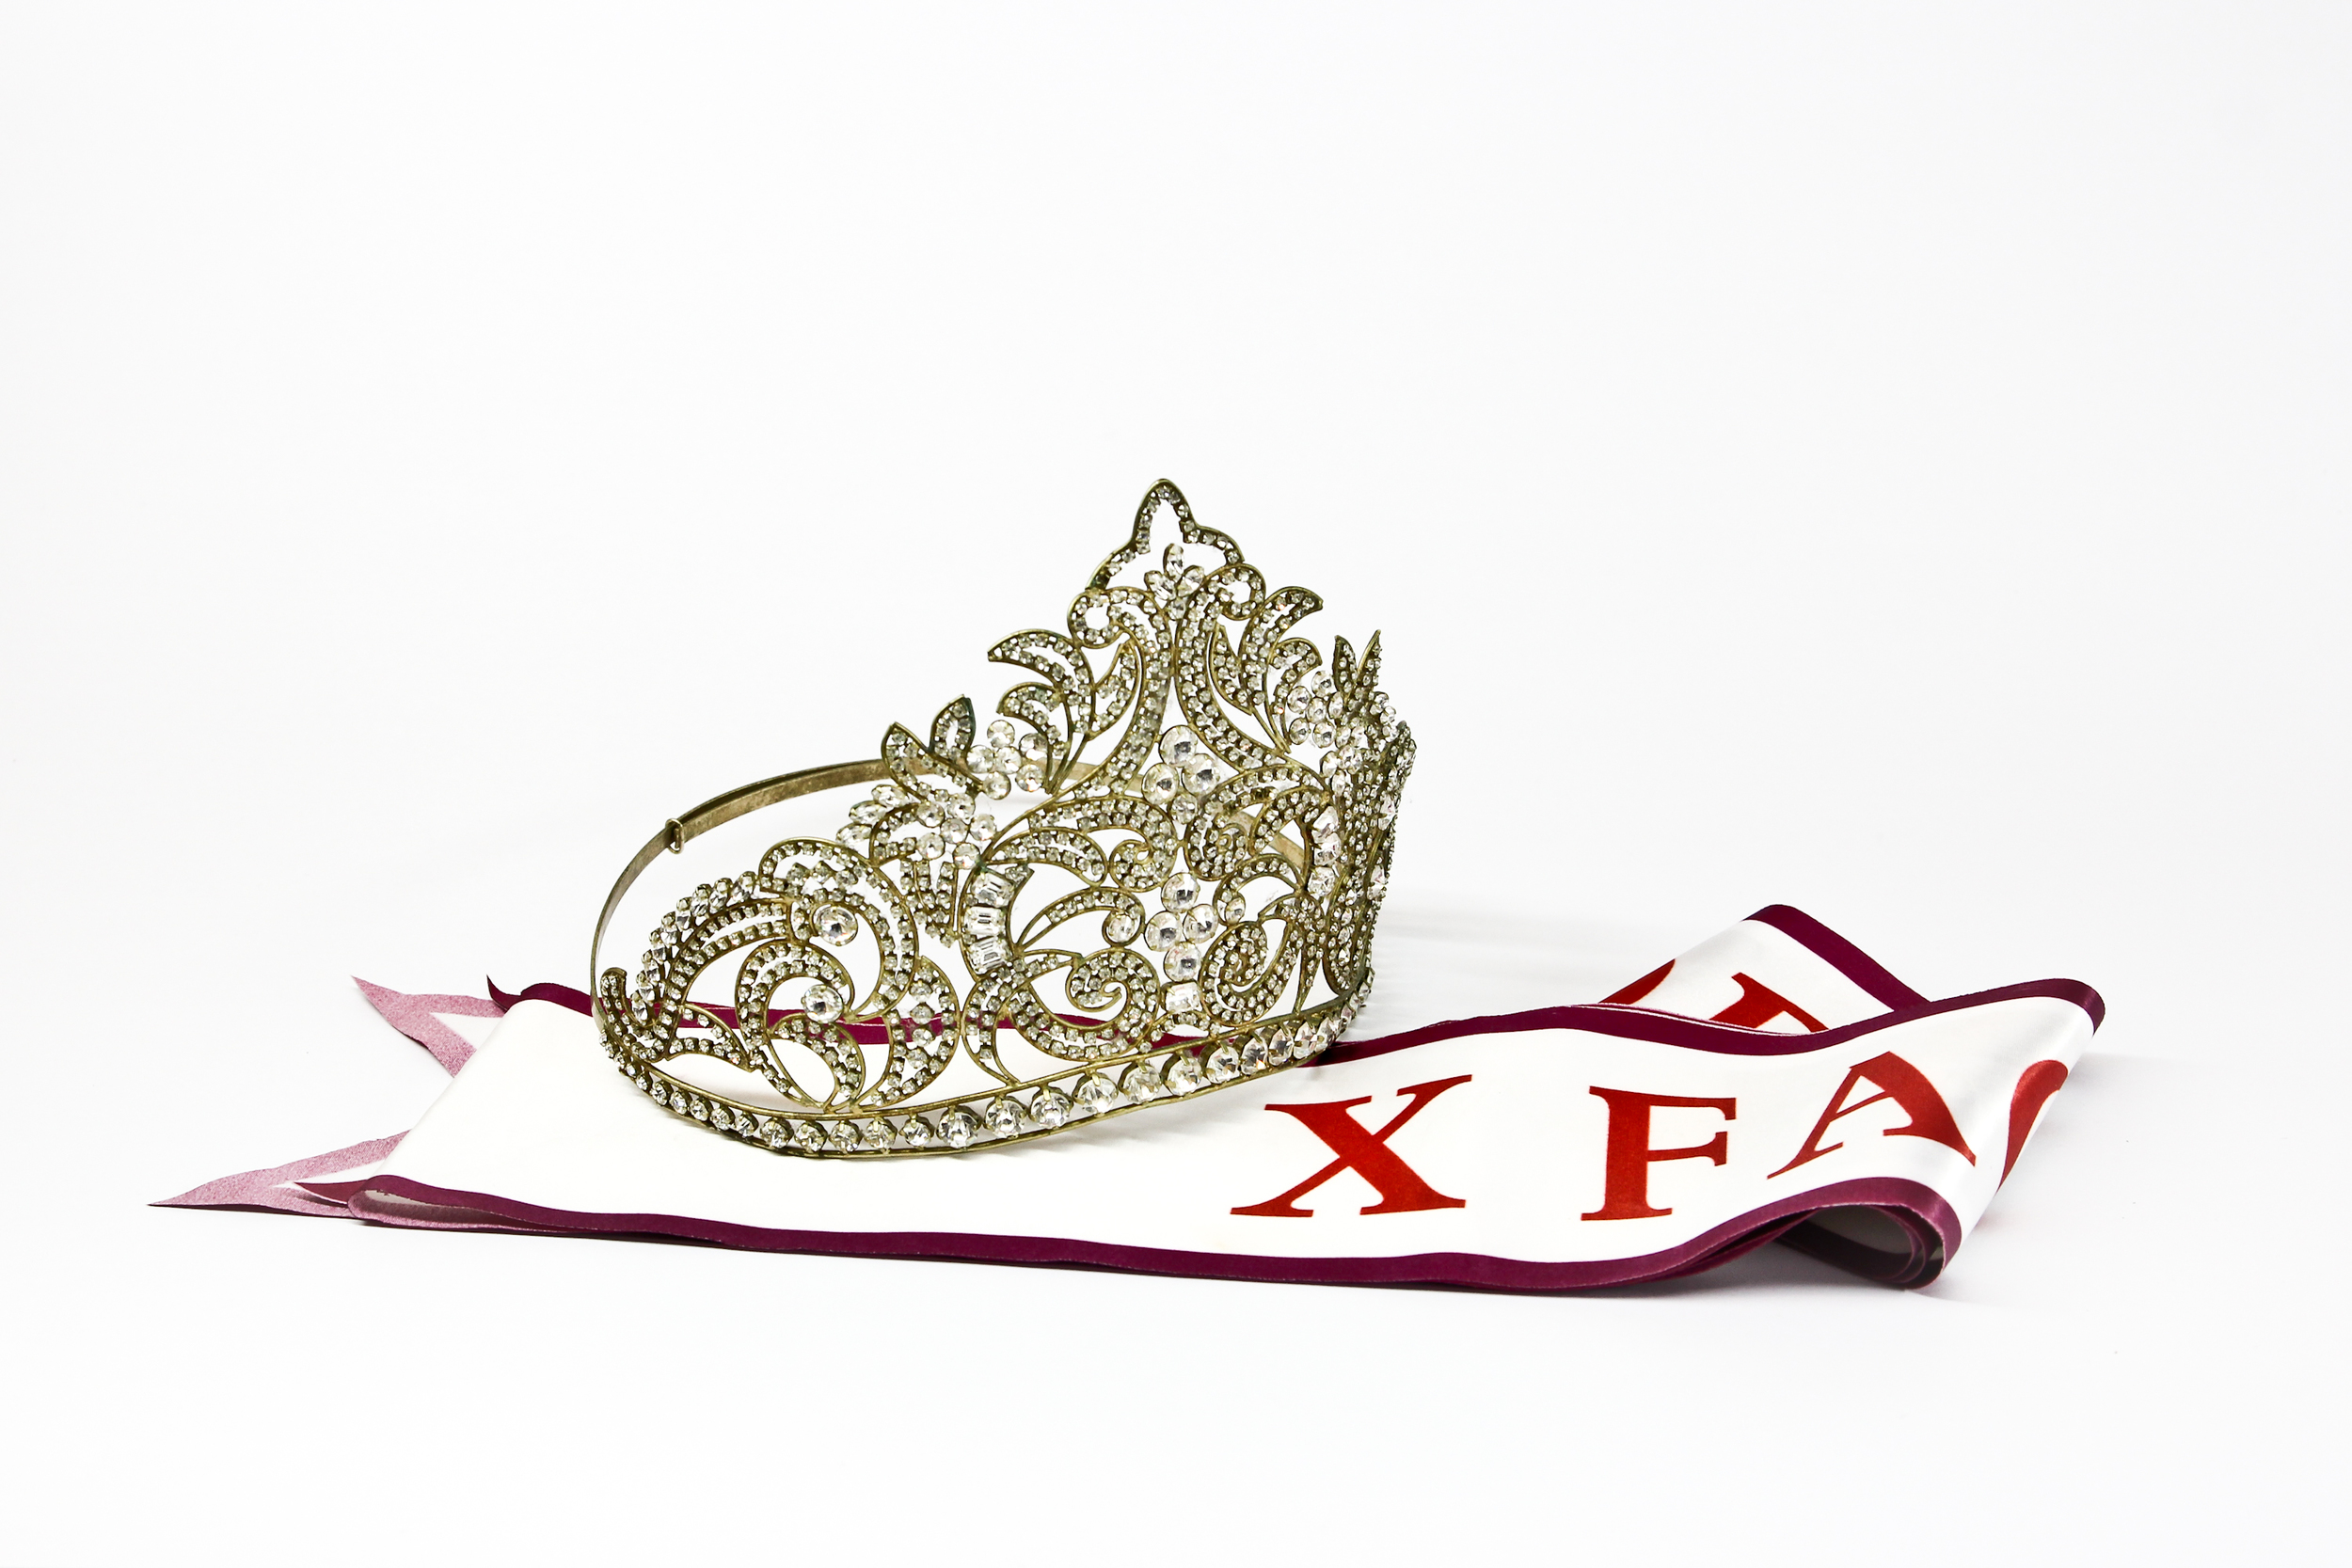 Beauty pageant sash and tiara